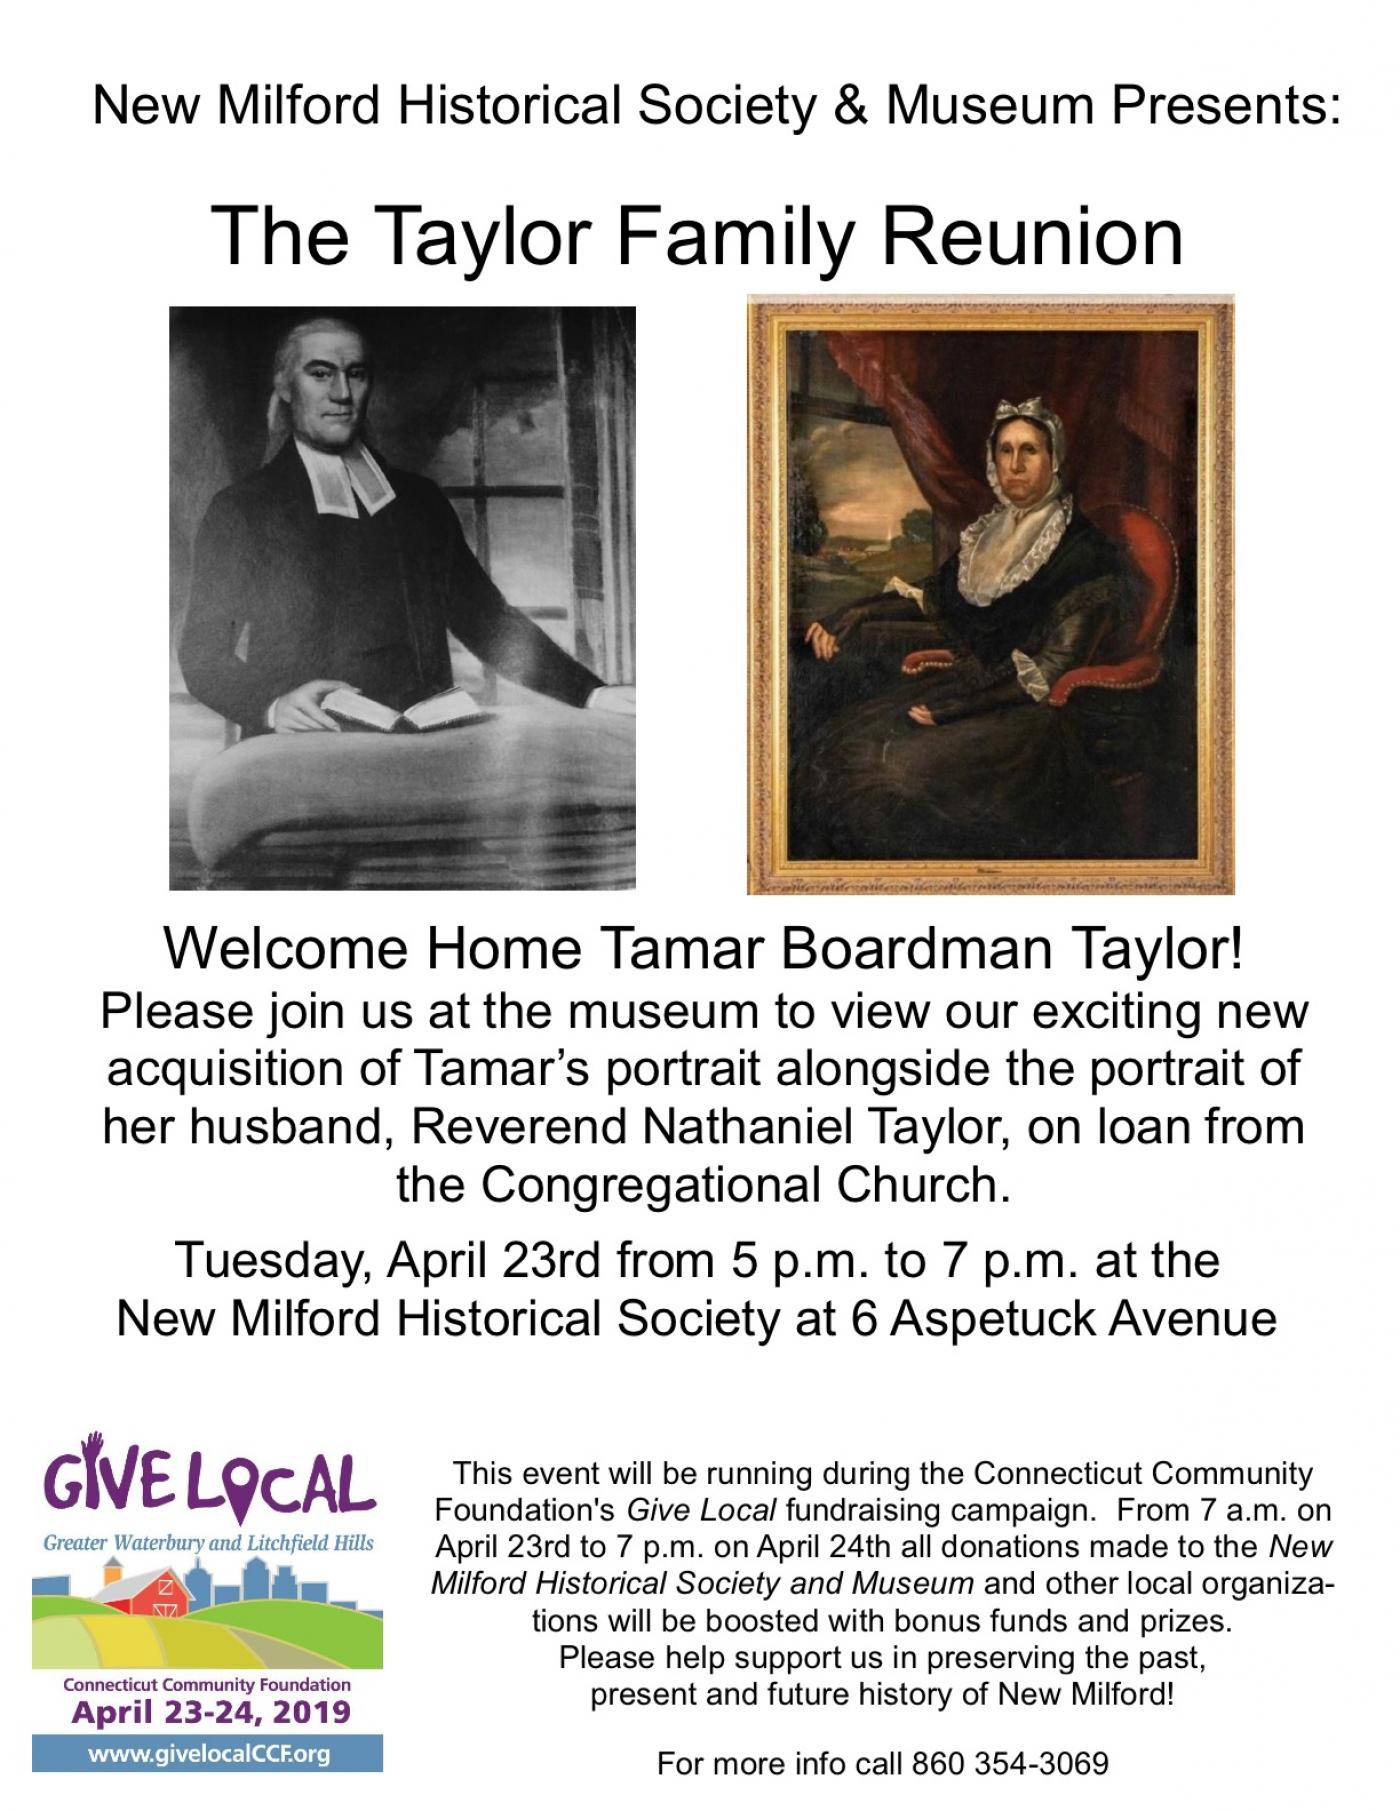 <h2>Welcome Home Tamar Boardman Taylor!</h2>